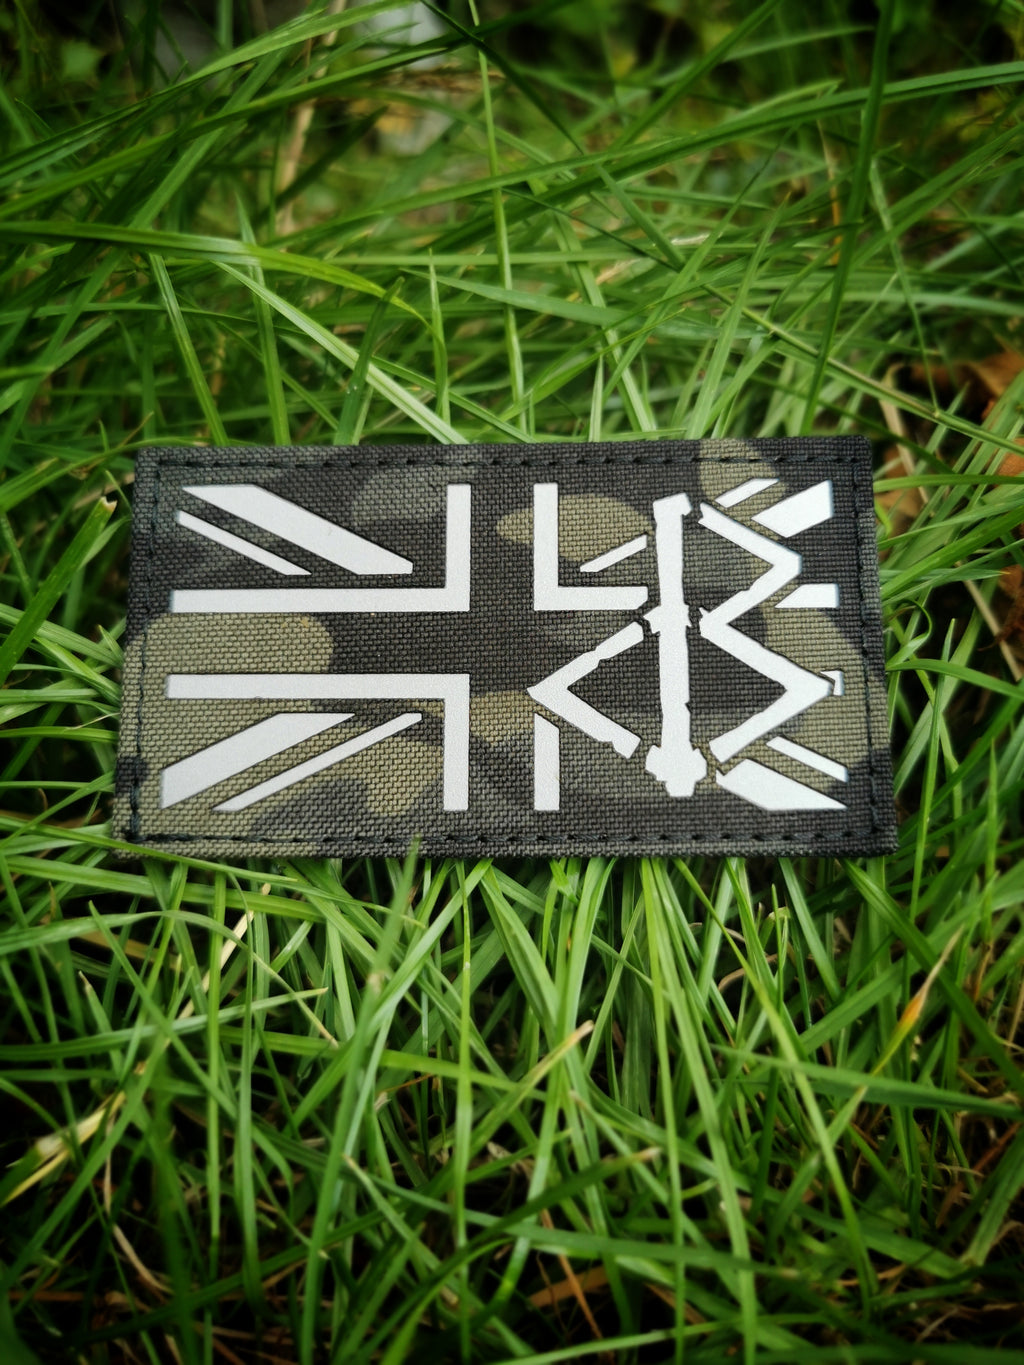 BLACK OMƎN UNION JACK PATCH / MULTICAM BLACK / GREY - BLACK-OMƎN